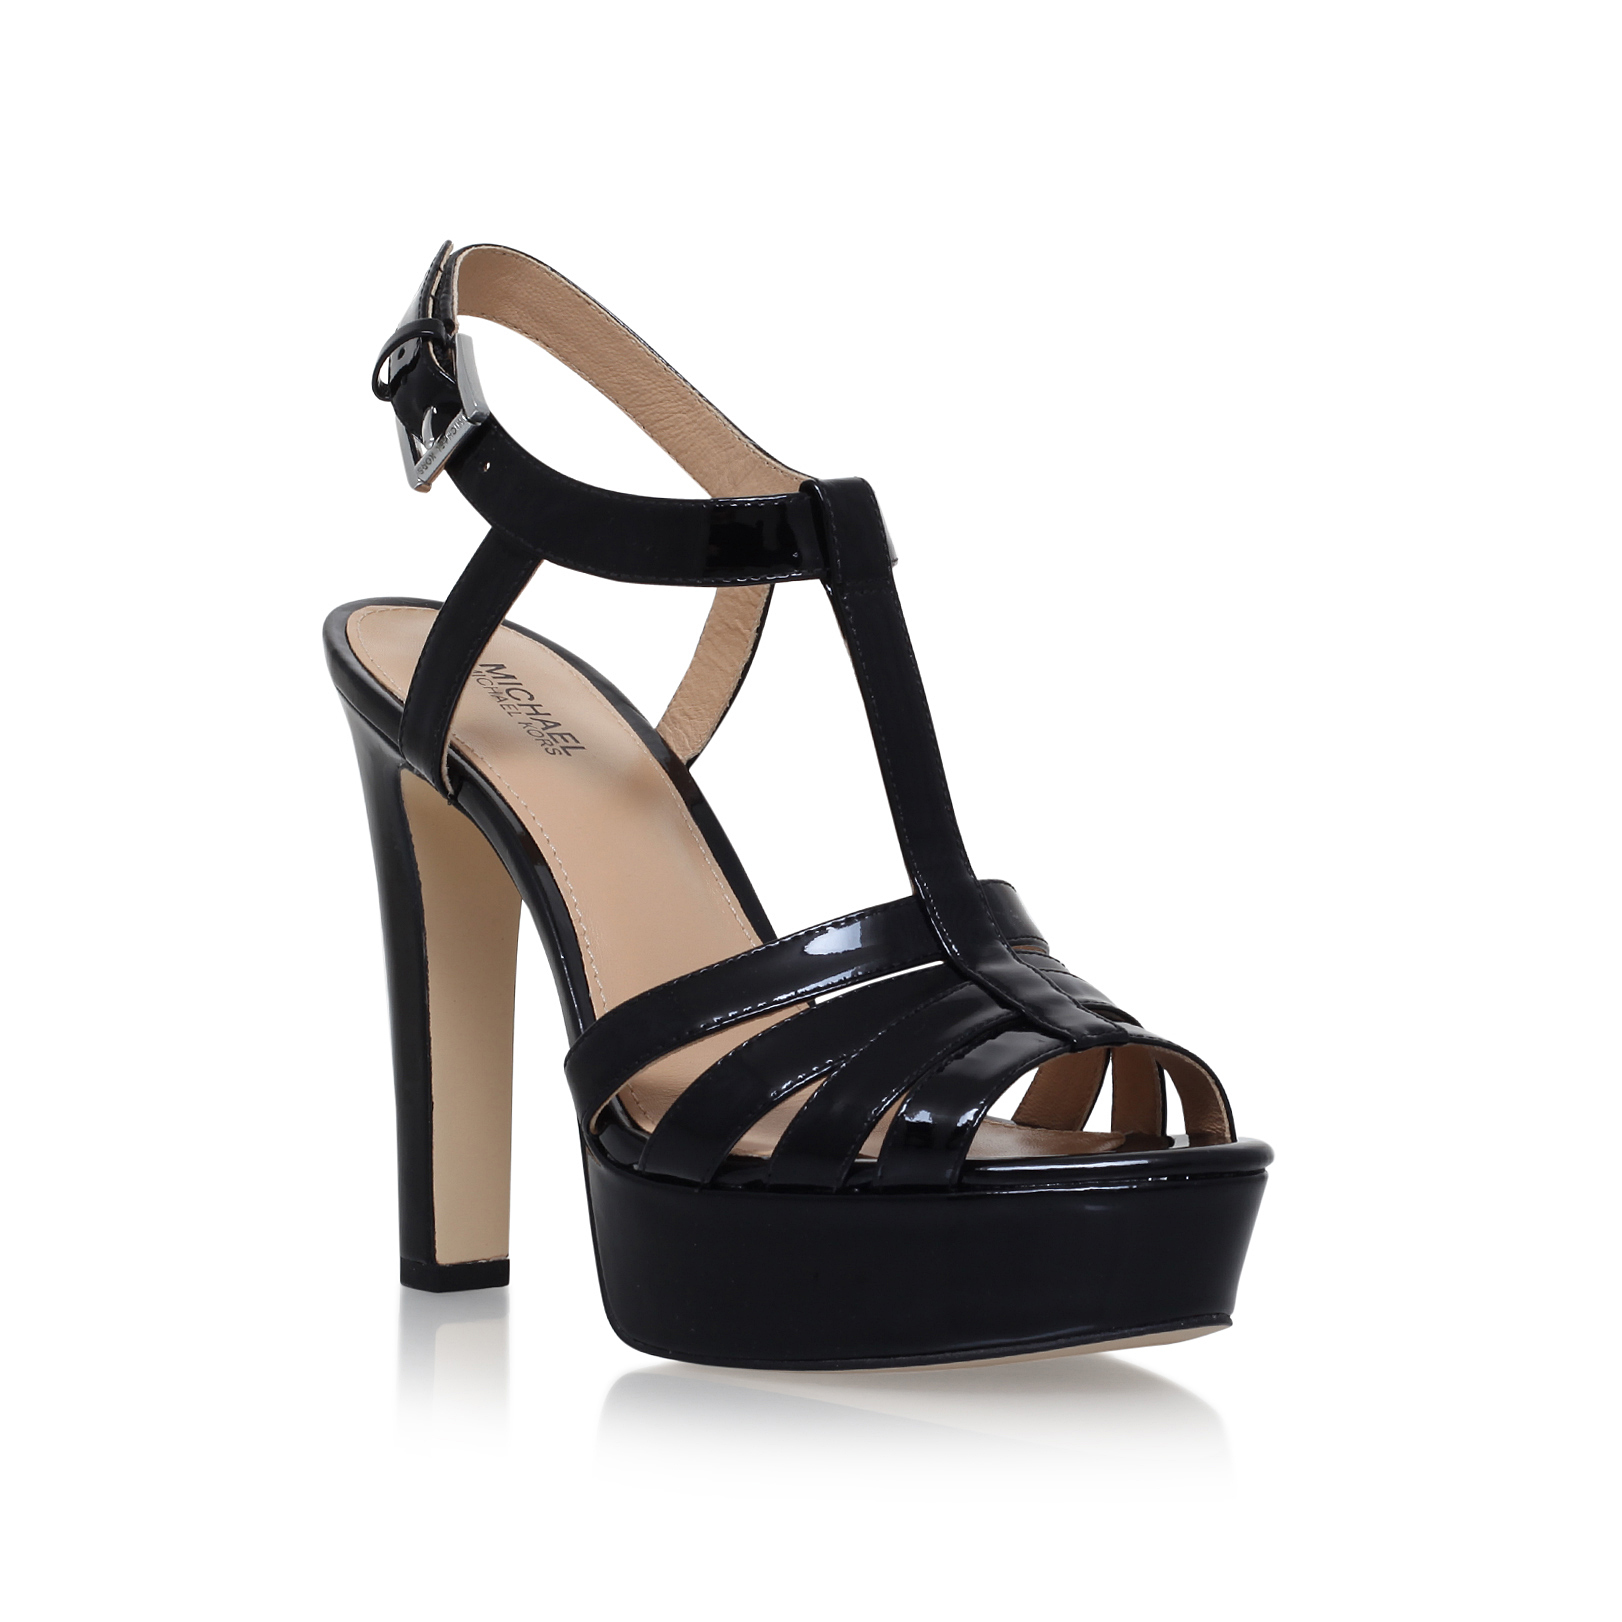 0270f071ac4 CATALINA SANDAL Michael Michael Kors Catalina Black High Heel ...